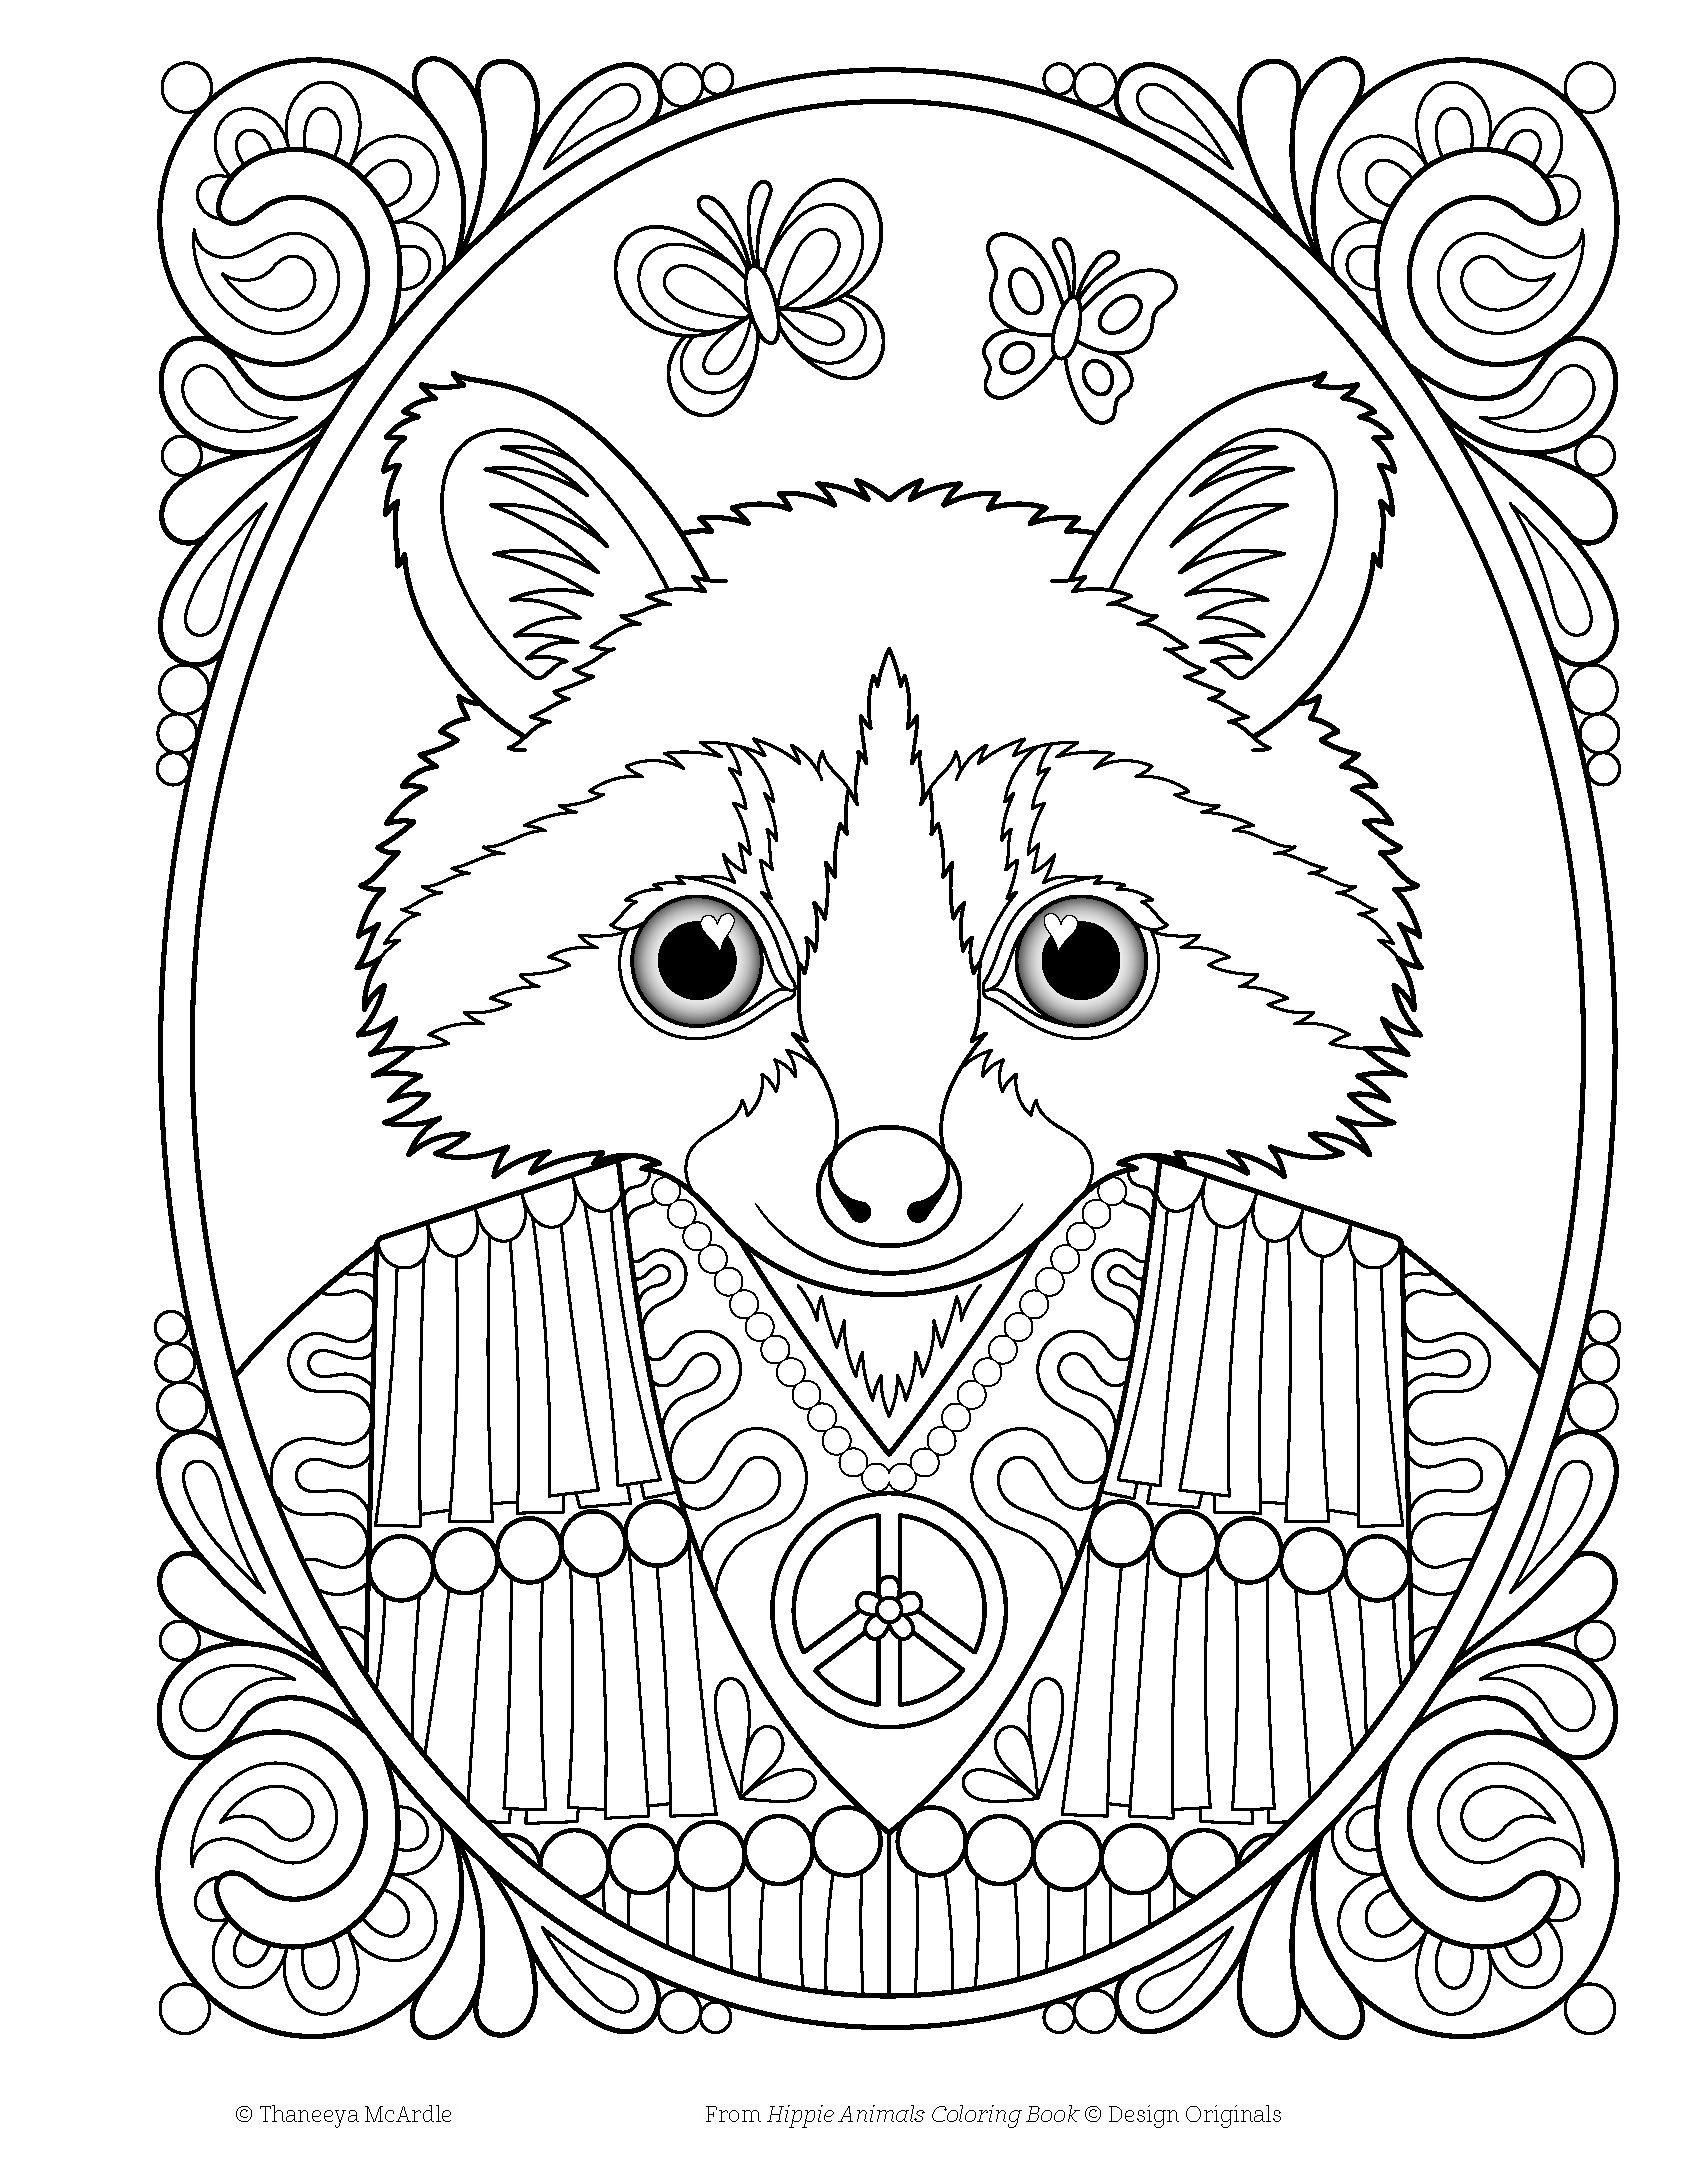 Amazon.com: Hippie Animals Coloring Book (Coloring is Fun) (Design ...